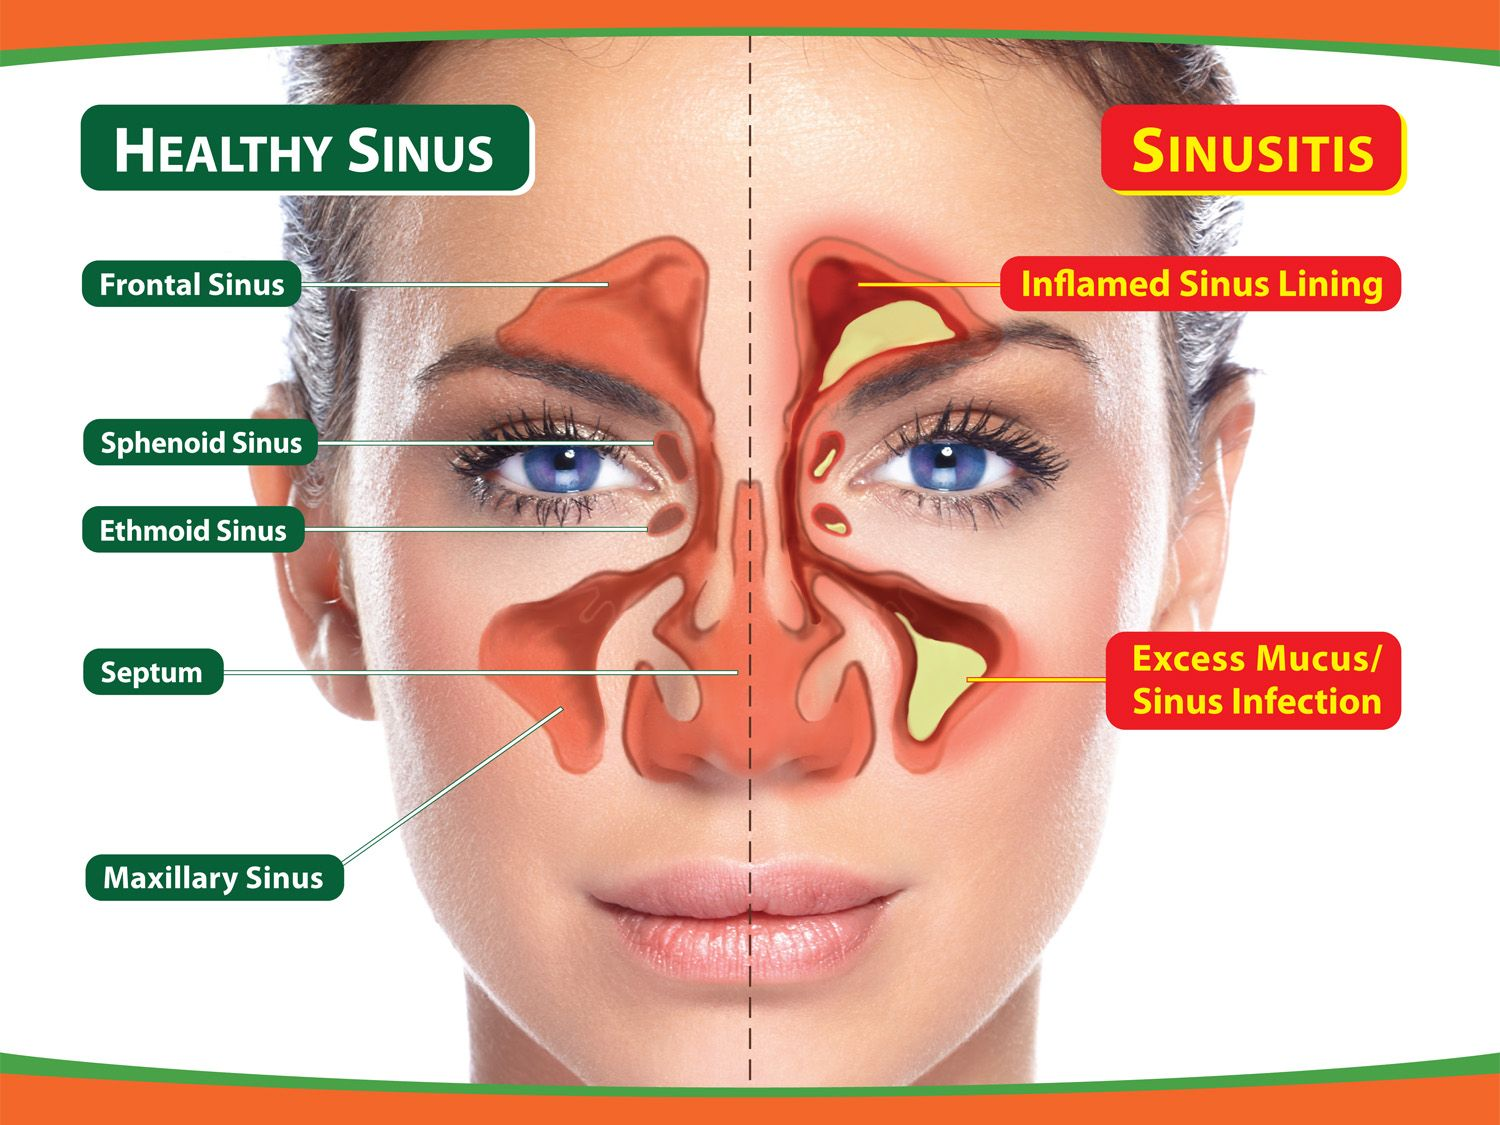 – Sinusitis Symptoms and Treatment at Home in Hindi